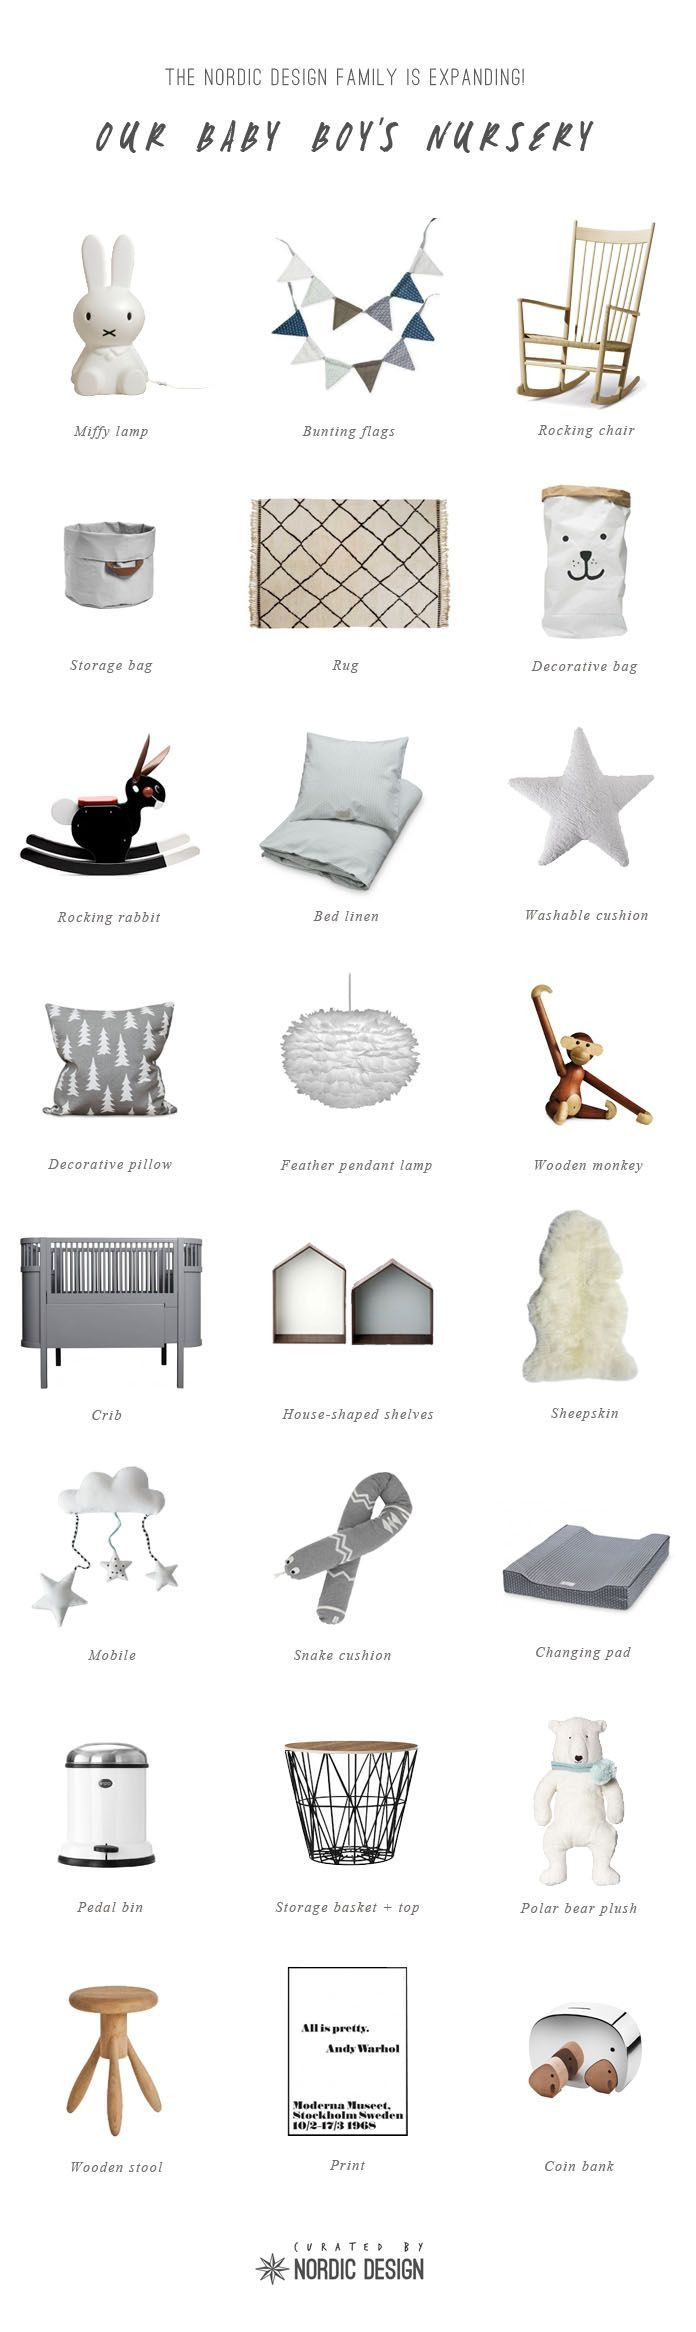 NordicDesign's Ultimate Nursery List - A simple palette for a serene atmosphere + a Scandinavian look + timeless design pieces